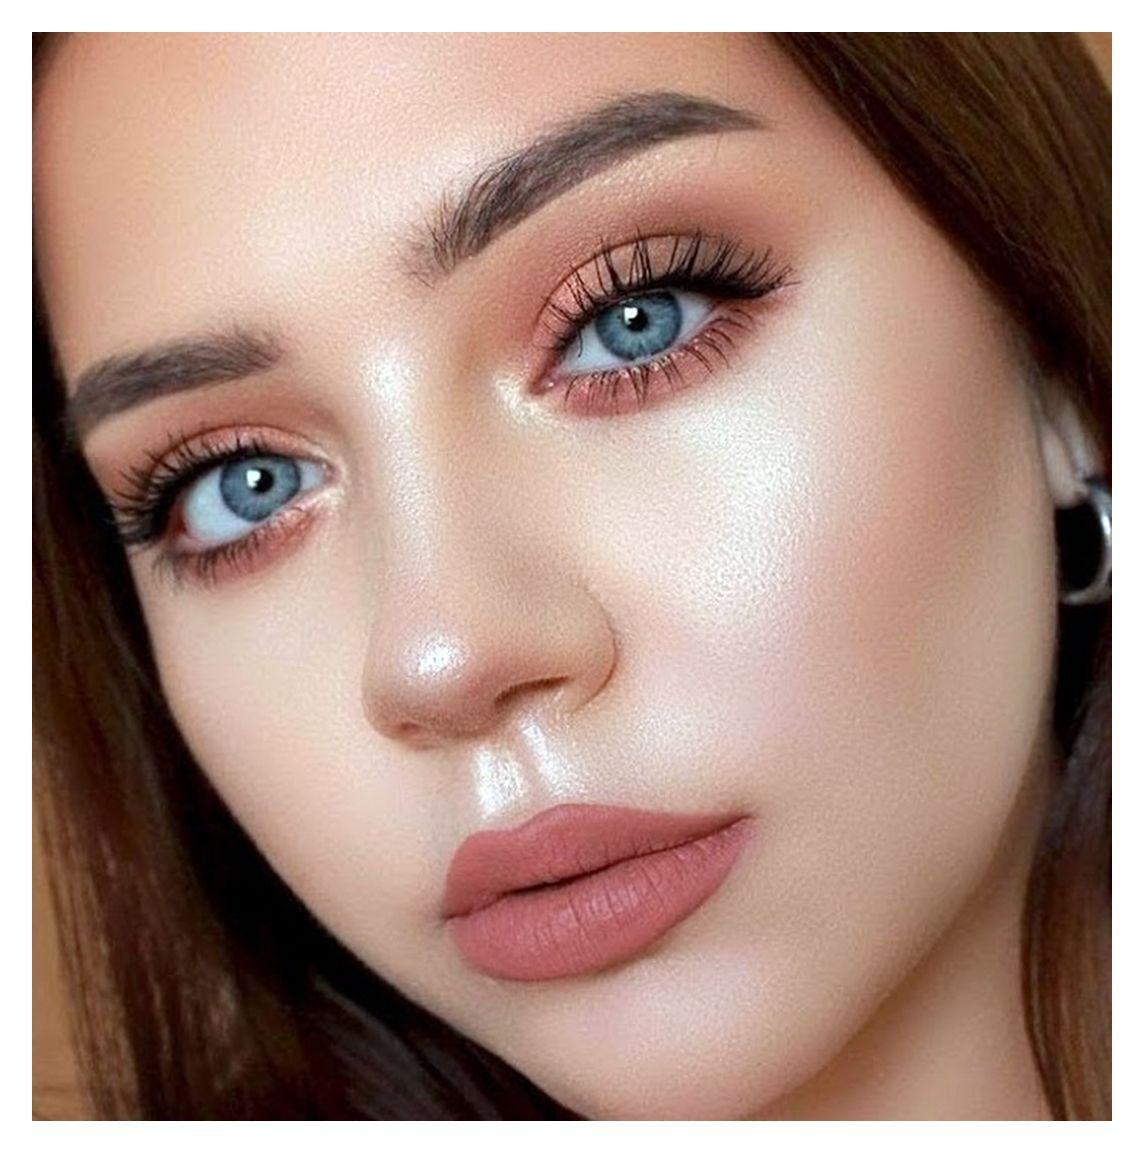 7 Glowy Look Of Prom Night Makeup That Will Make You Shine In Summer 4140 Prom Makeup Prommakeup Prom N In 2020 Blue Eye Makeup Night Makeup Natural Summer Makeup